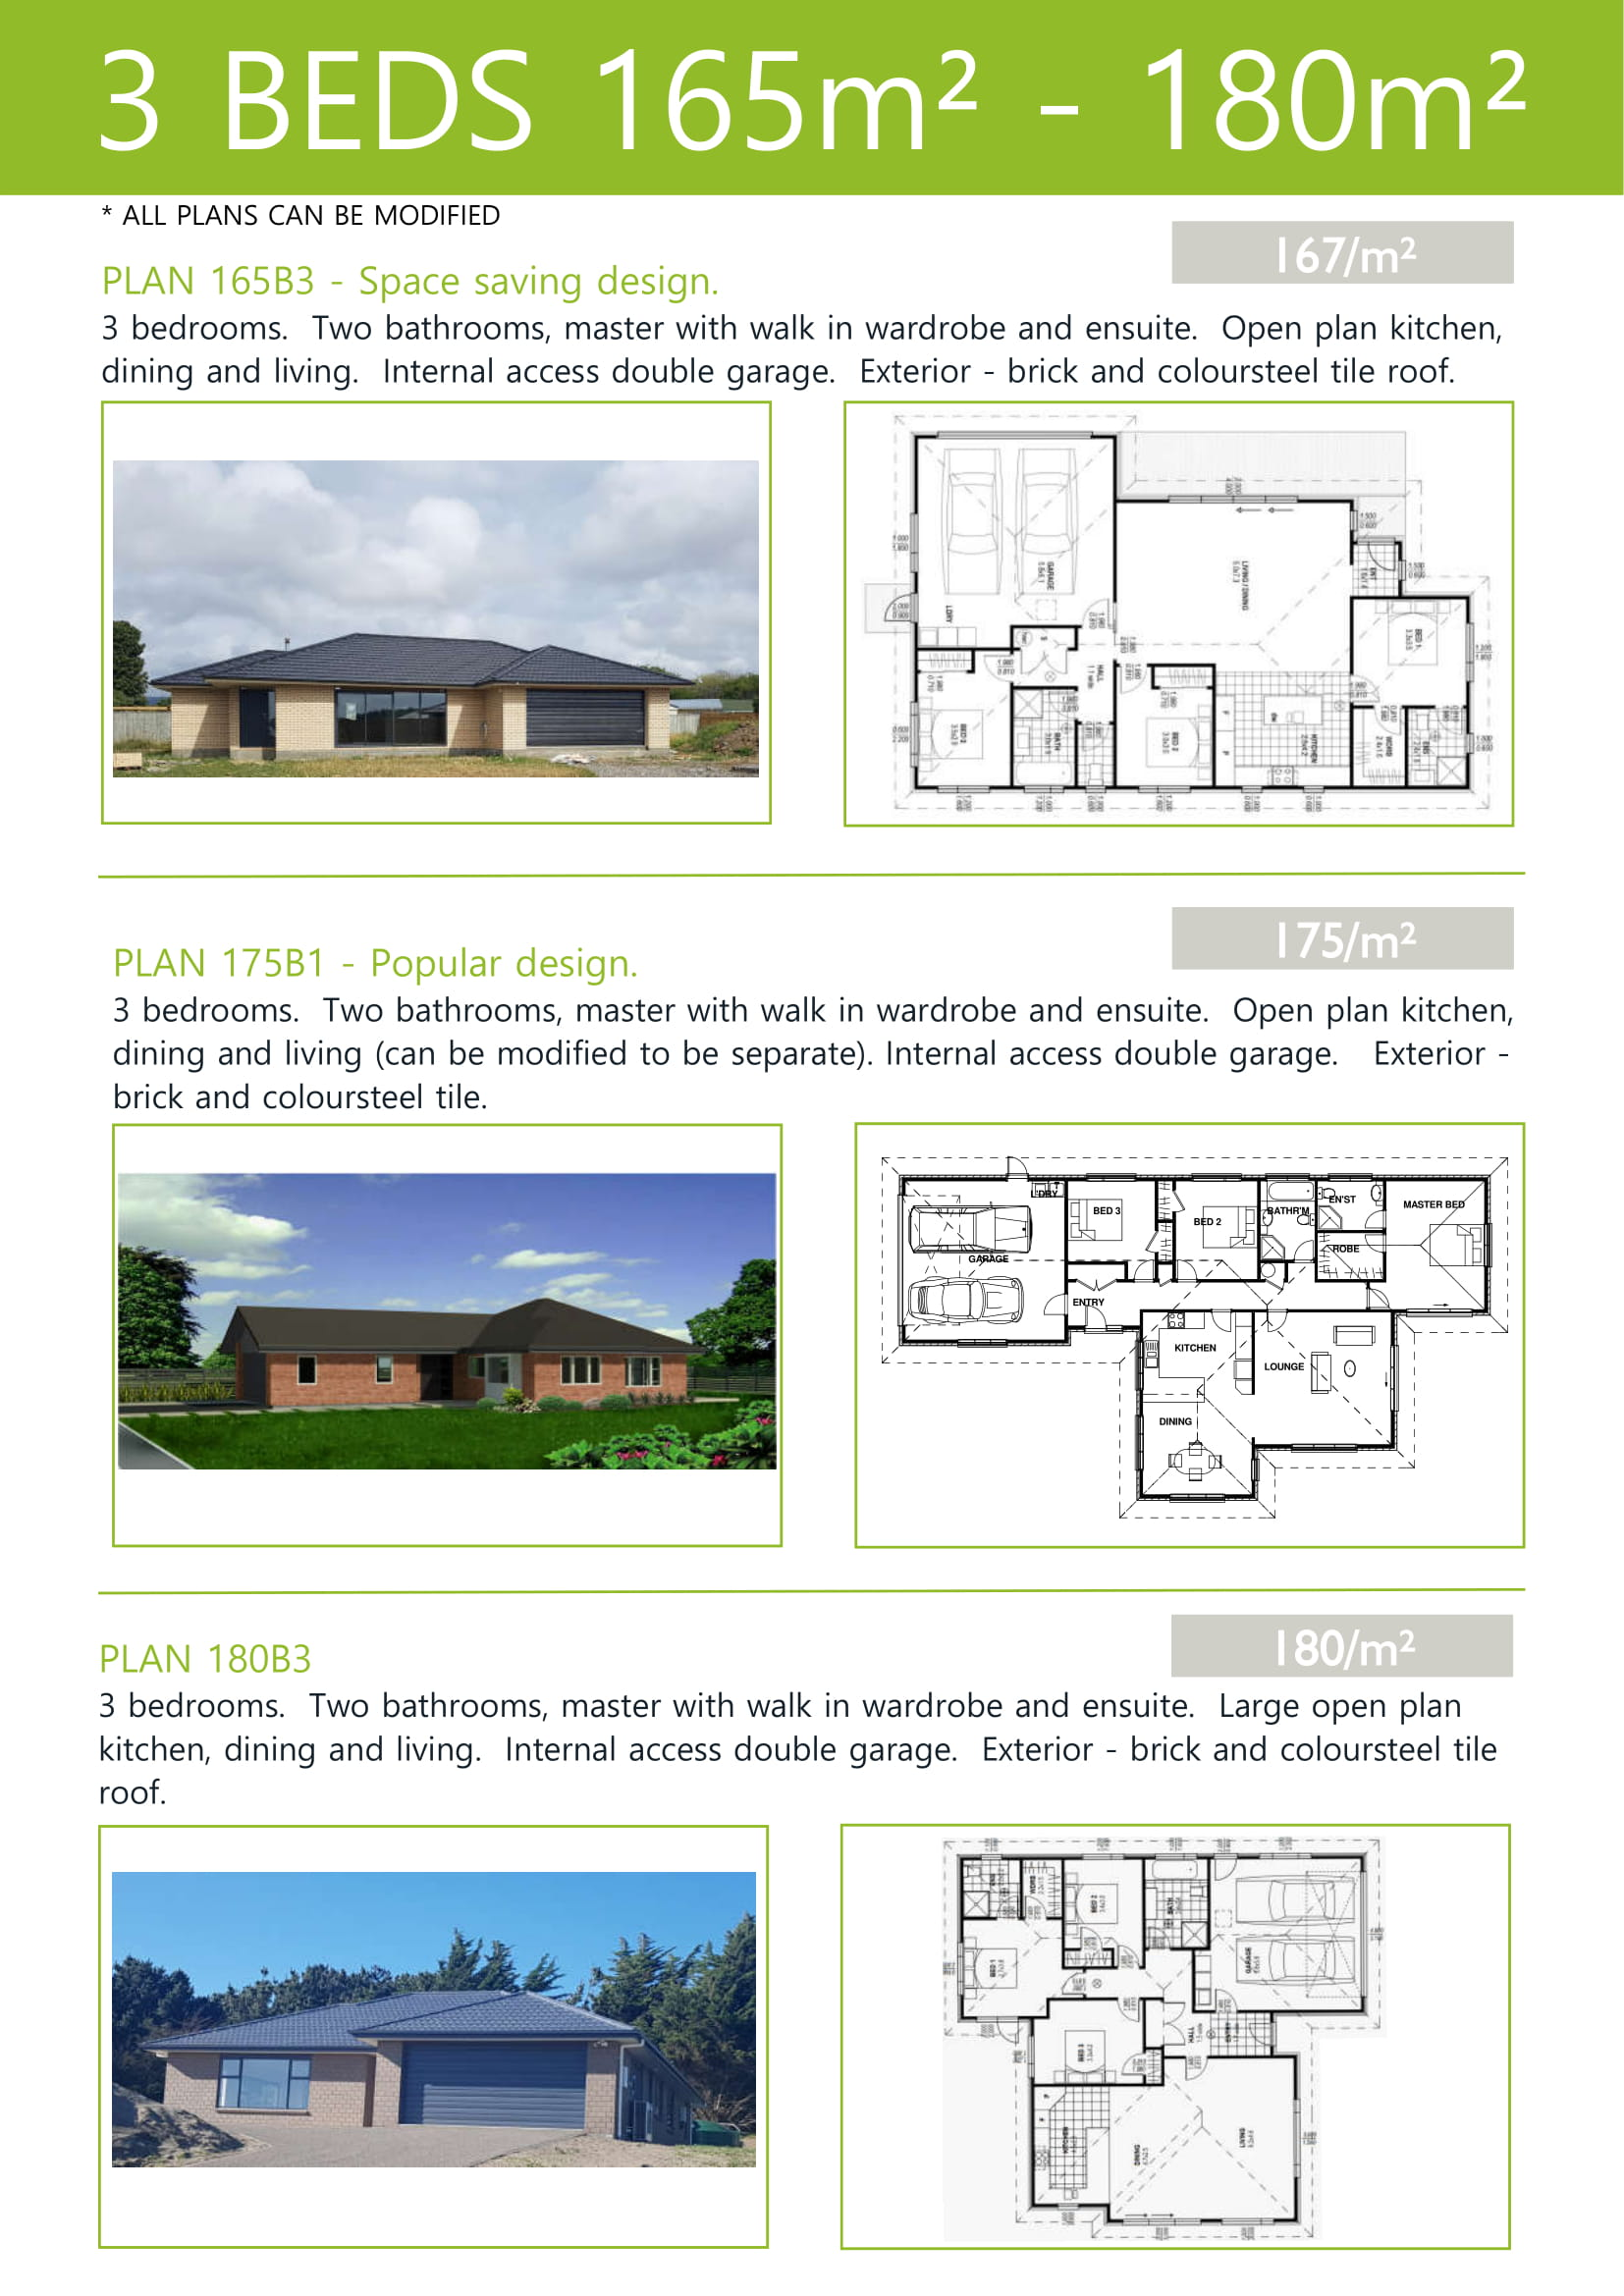 Plans up to 180M2